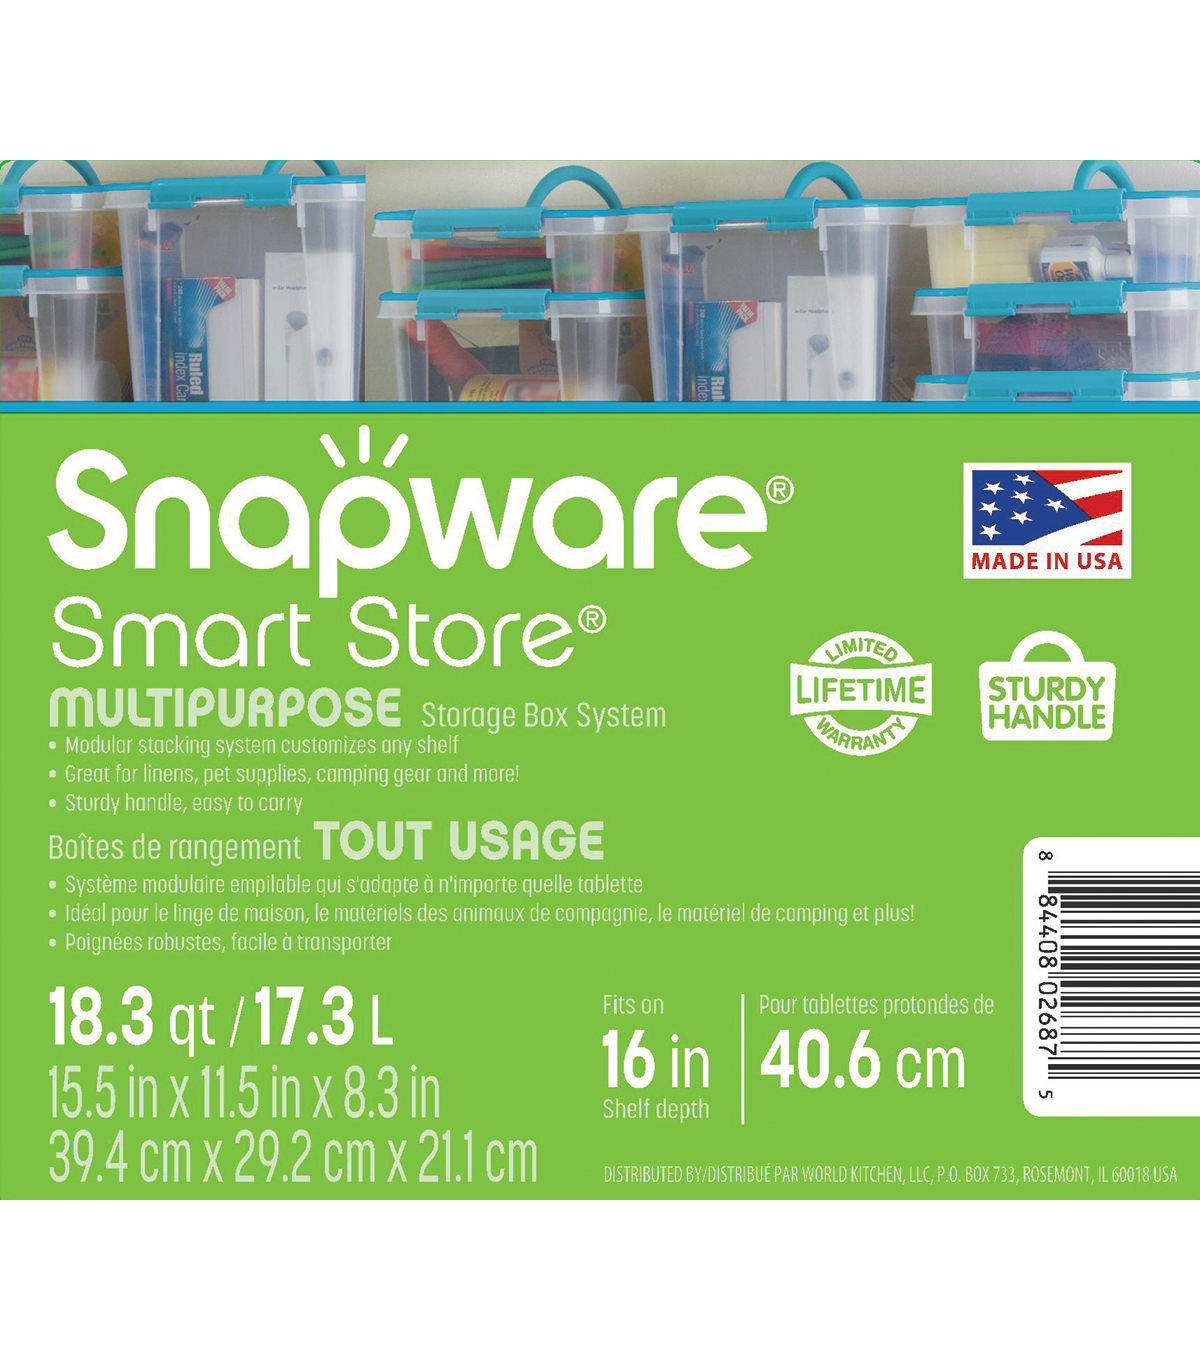 Snapware Smart Store 15.5x11.5x8.3\u0022 with Turquoise Handles and Lid